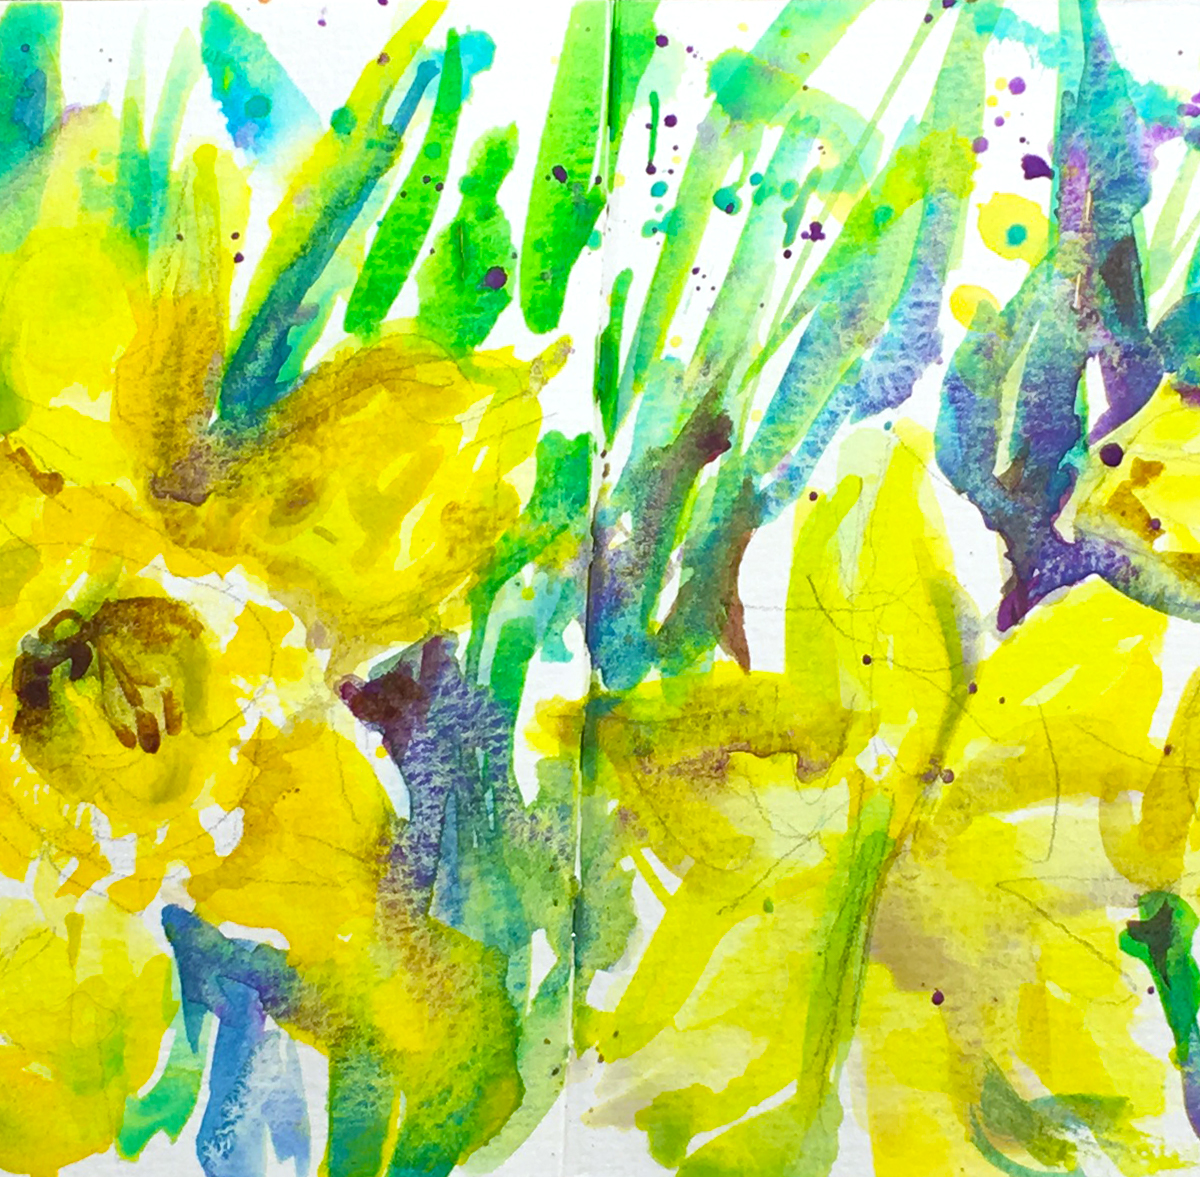 Daffodils Watercolor Sketch watercolor painting tutorial